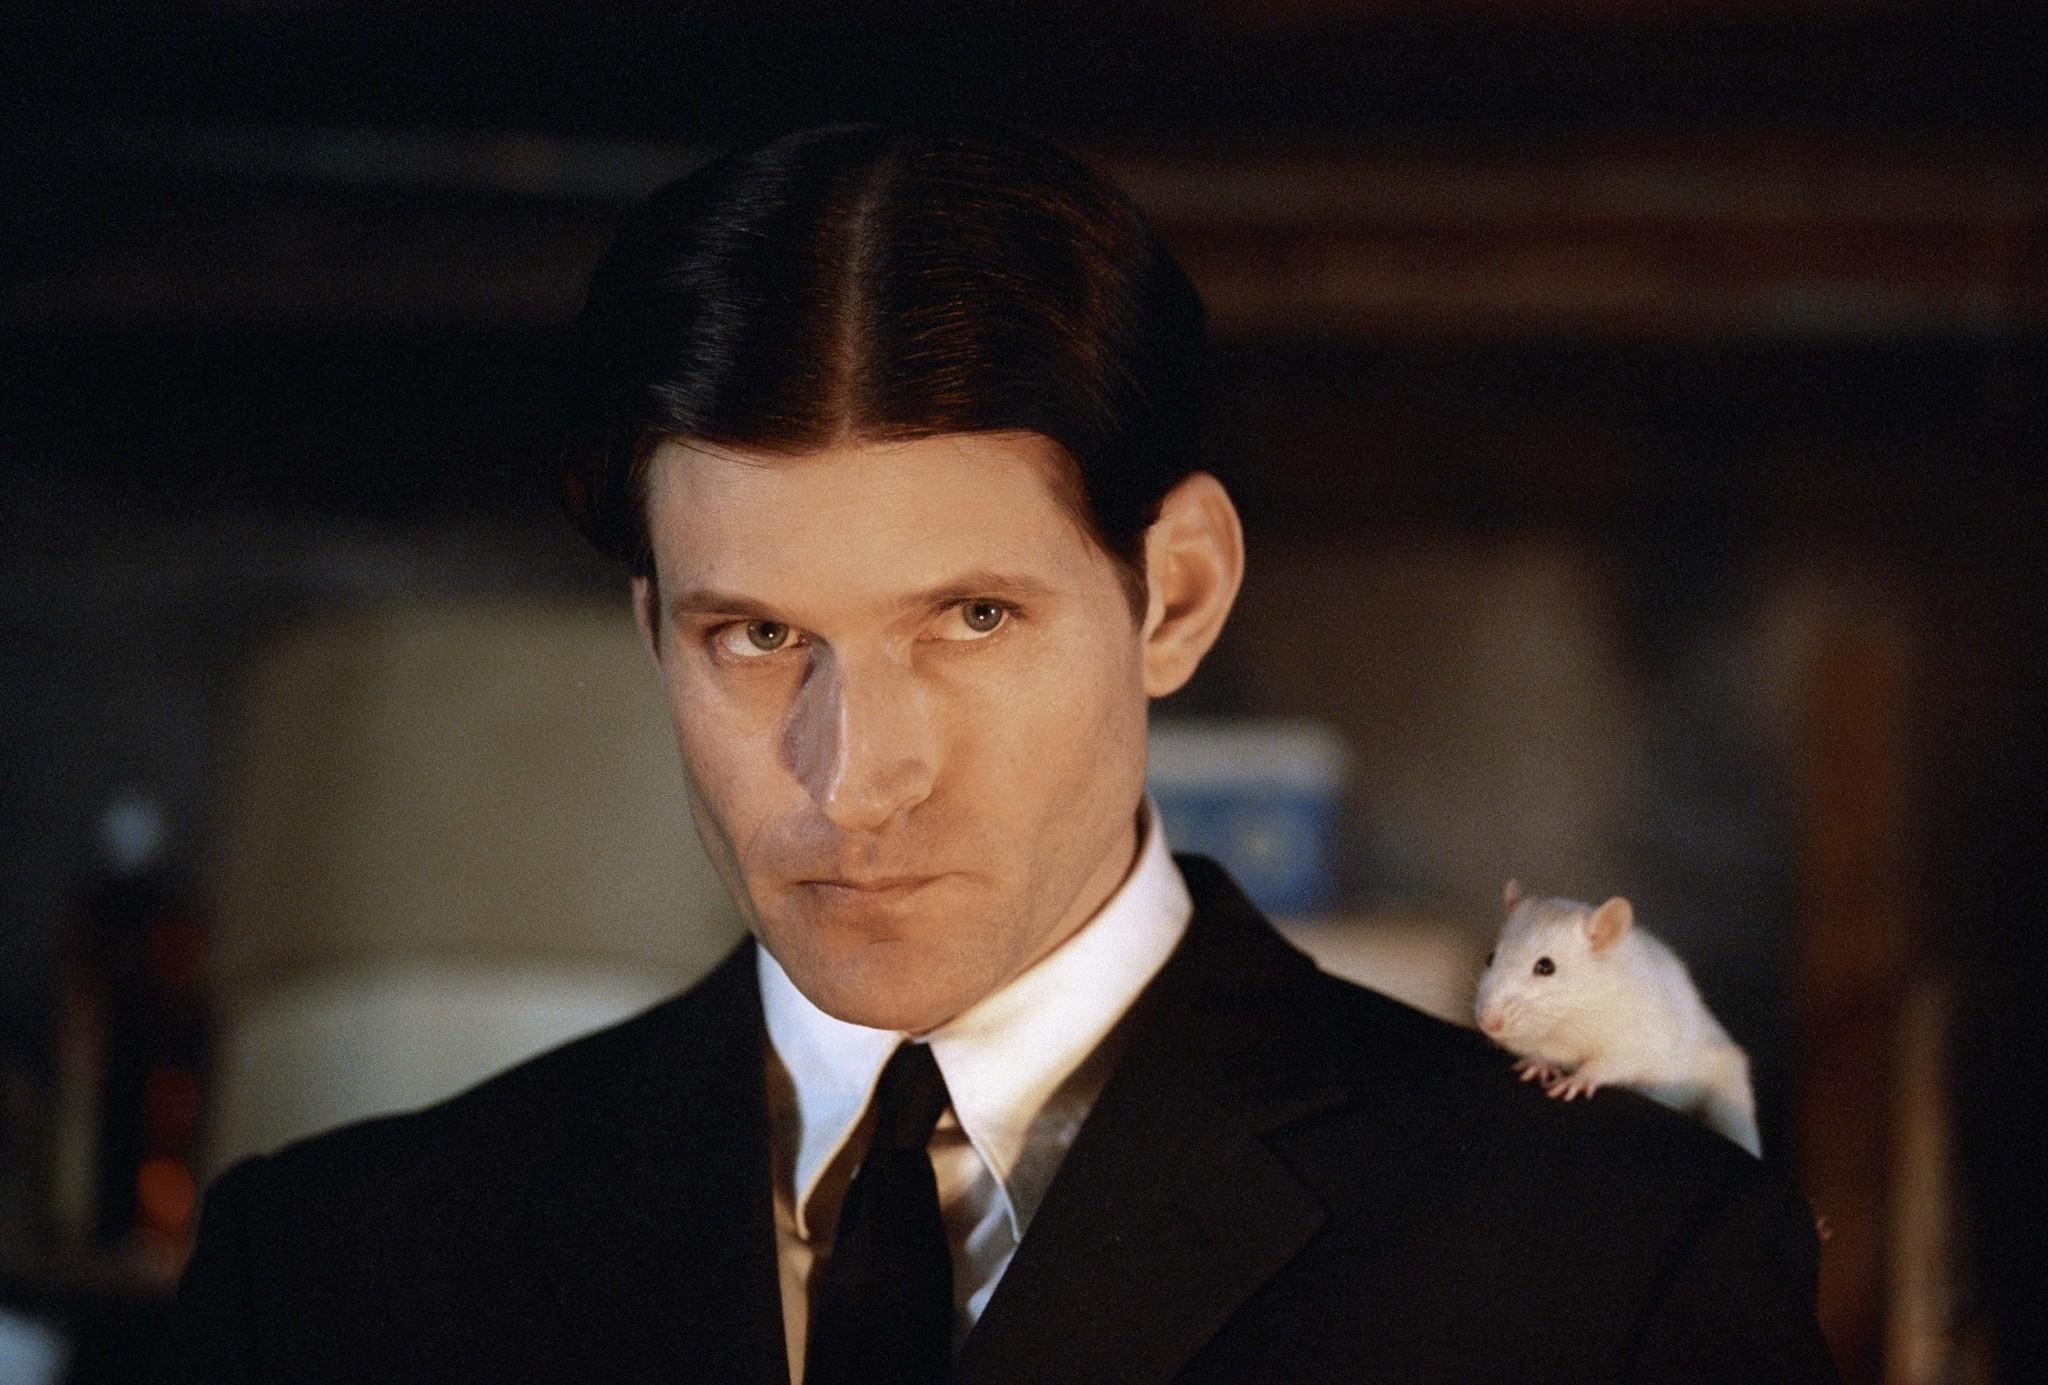 Crispin Glover | Known people - famous people news and ...